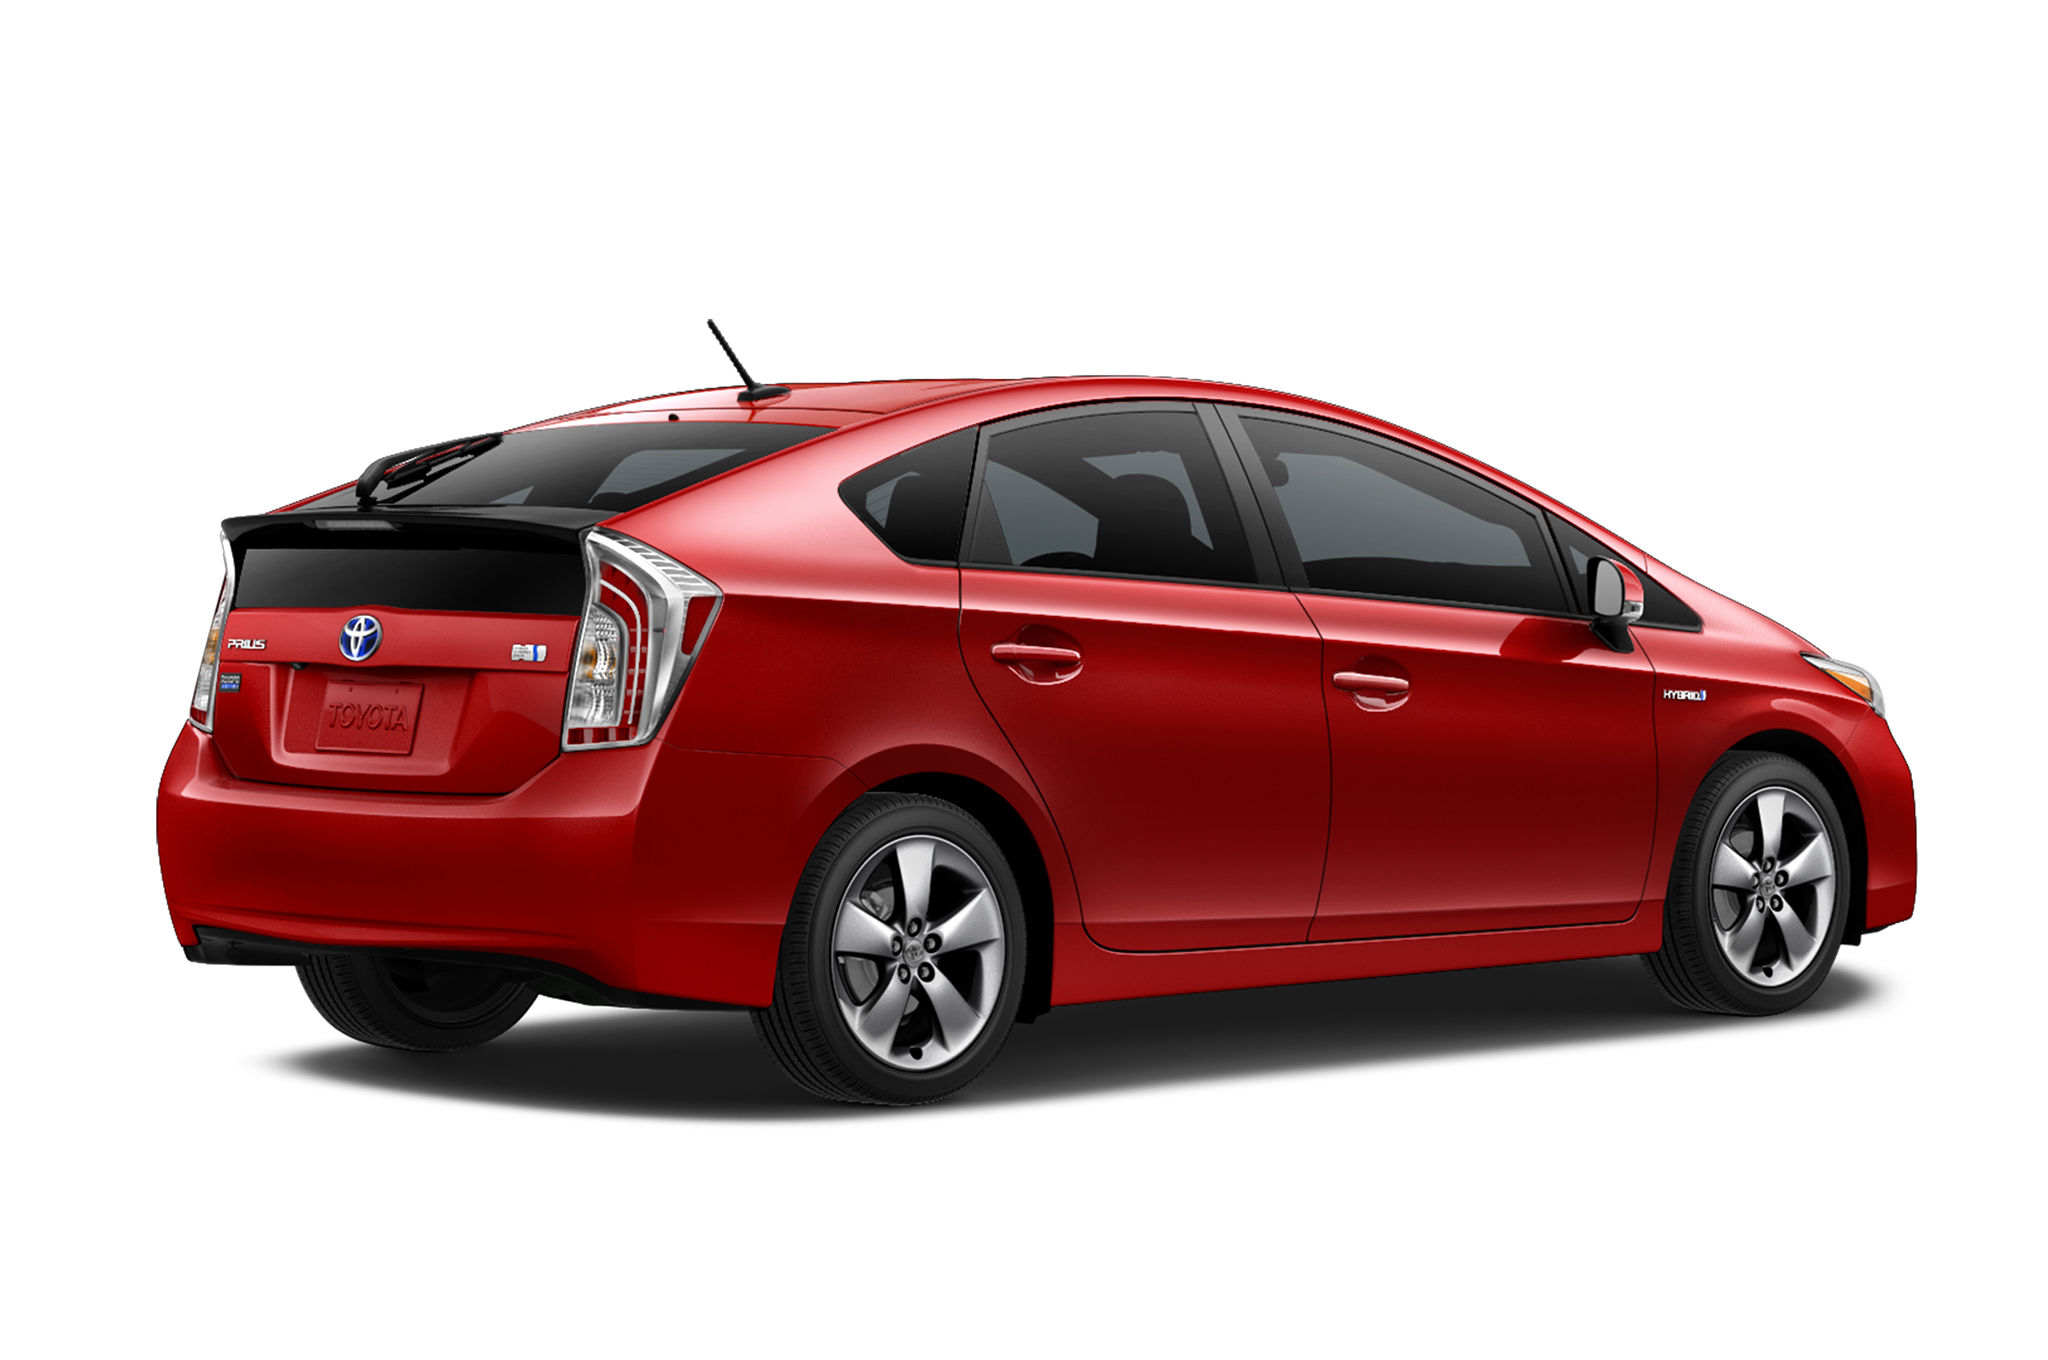 toyota prius 2015 price in pakistan review full specs images. Black Bedroom Furniture Sets. Home Design Ideas